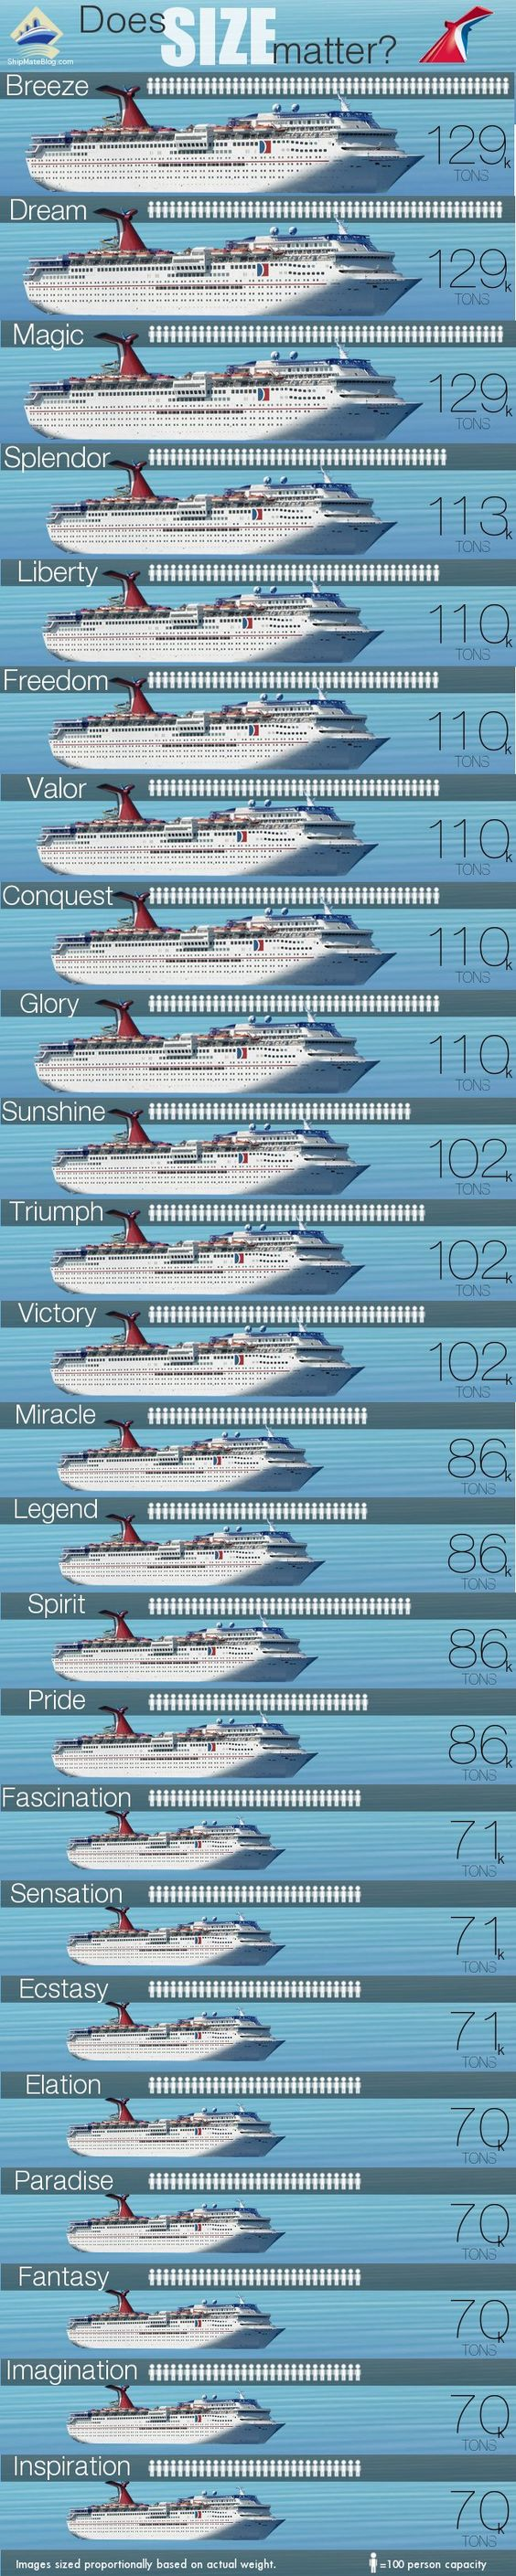 Does Size Matter Carnival Ship Size Comparison